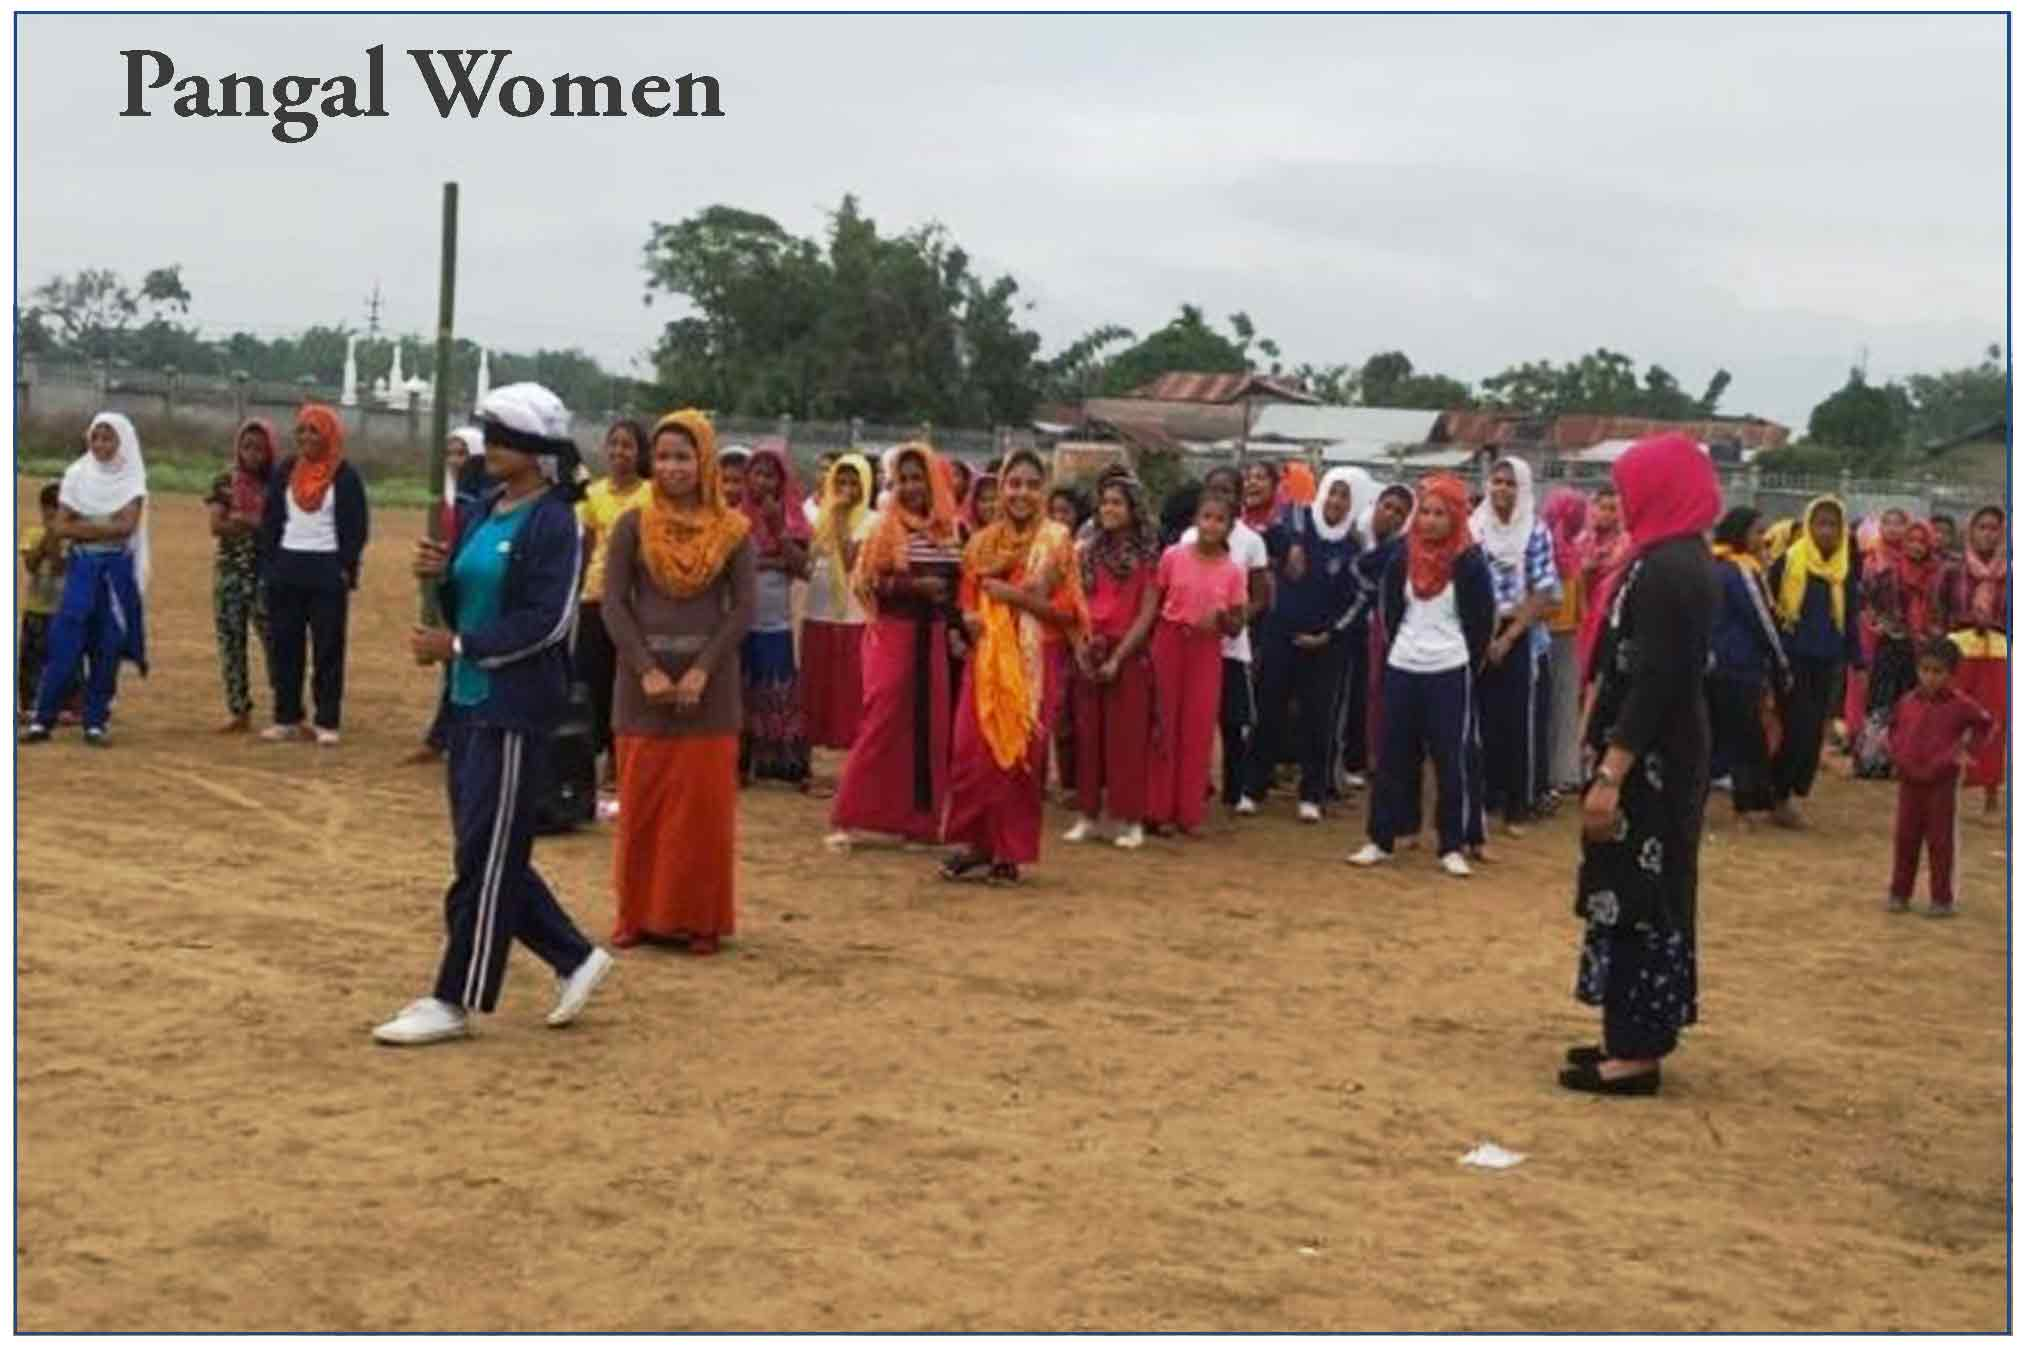 The State of Affairs of Pangal  Women: A Feminist Perspective